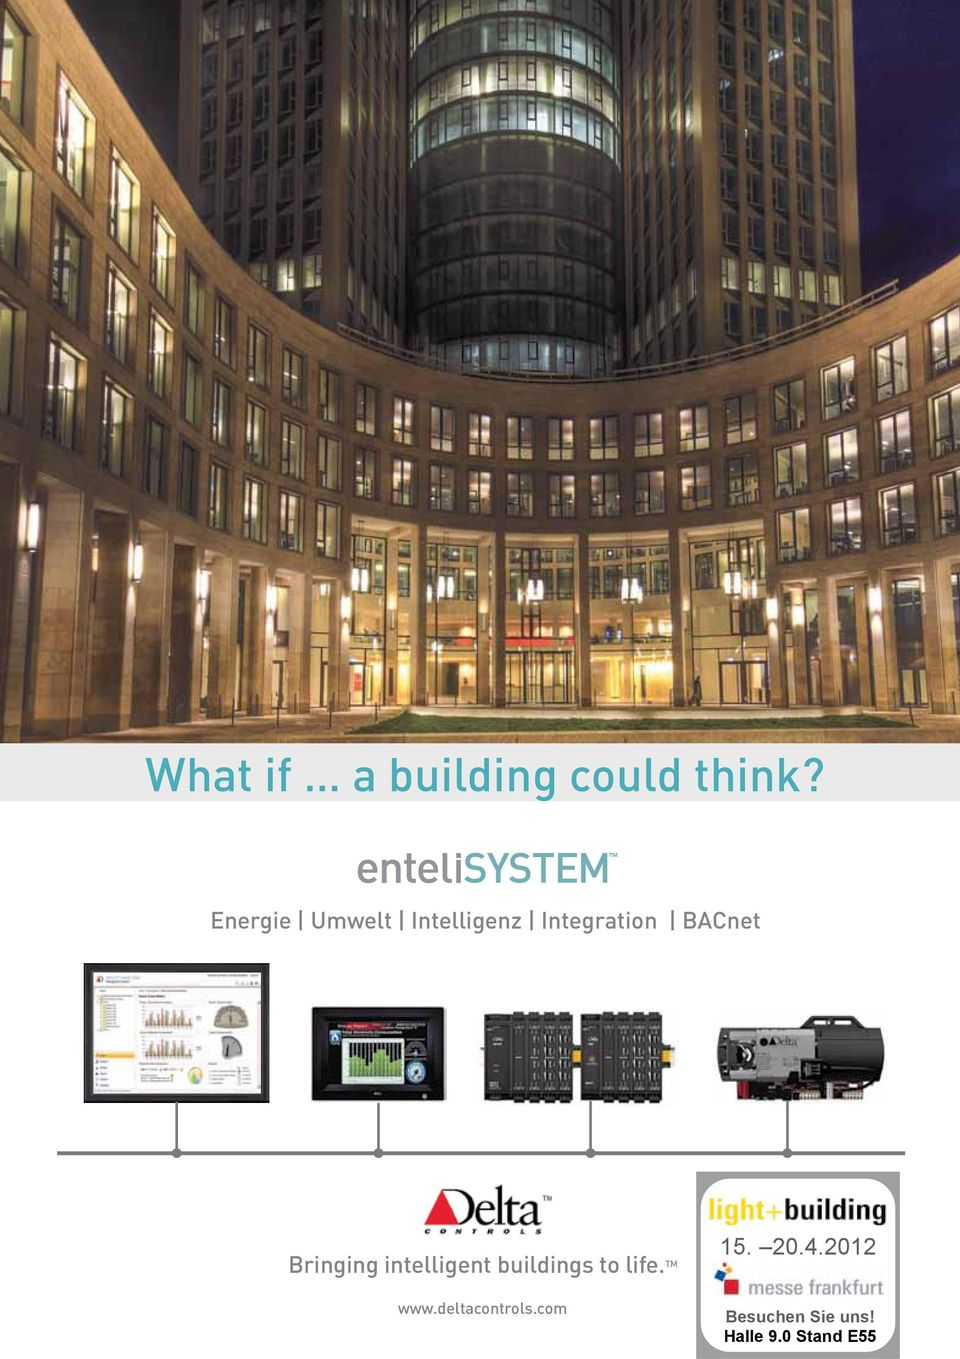 Bringing intelligent buildings to life. TM www.